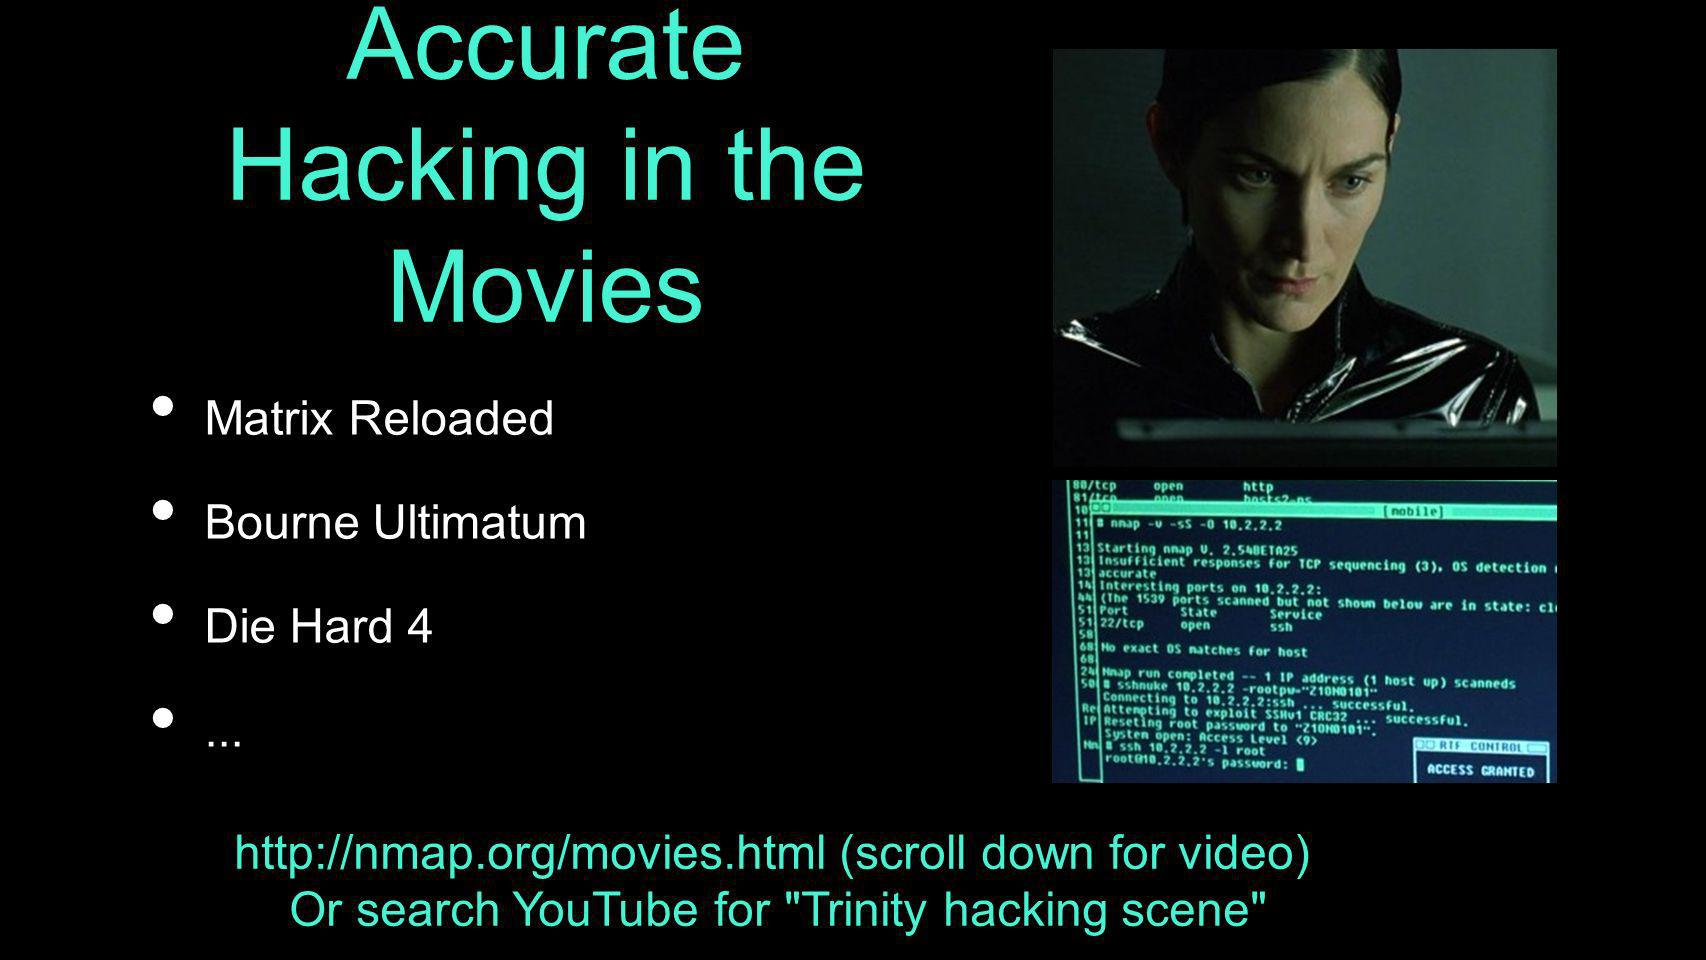 Accurate Hacking in the Movies